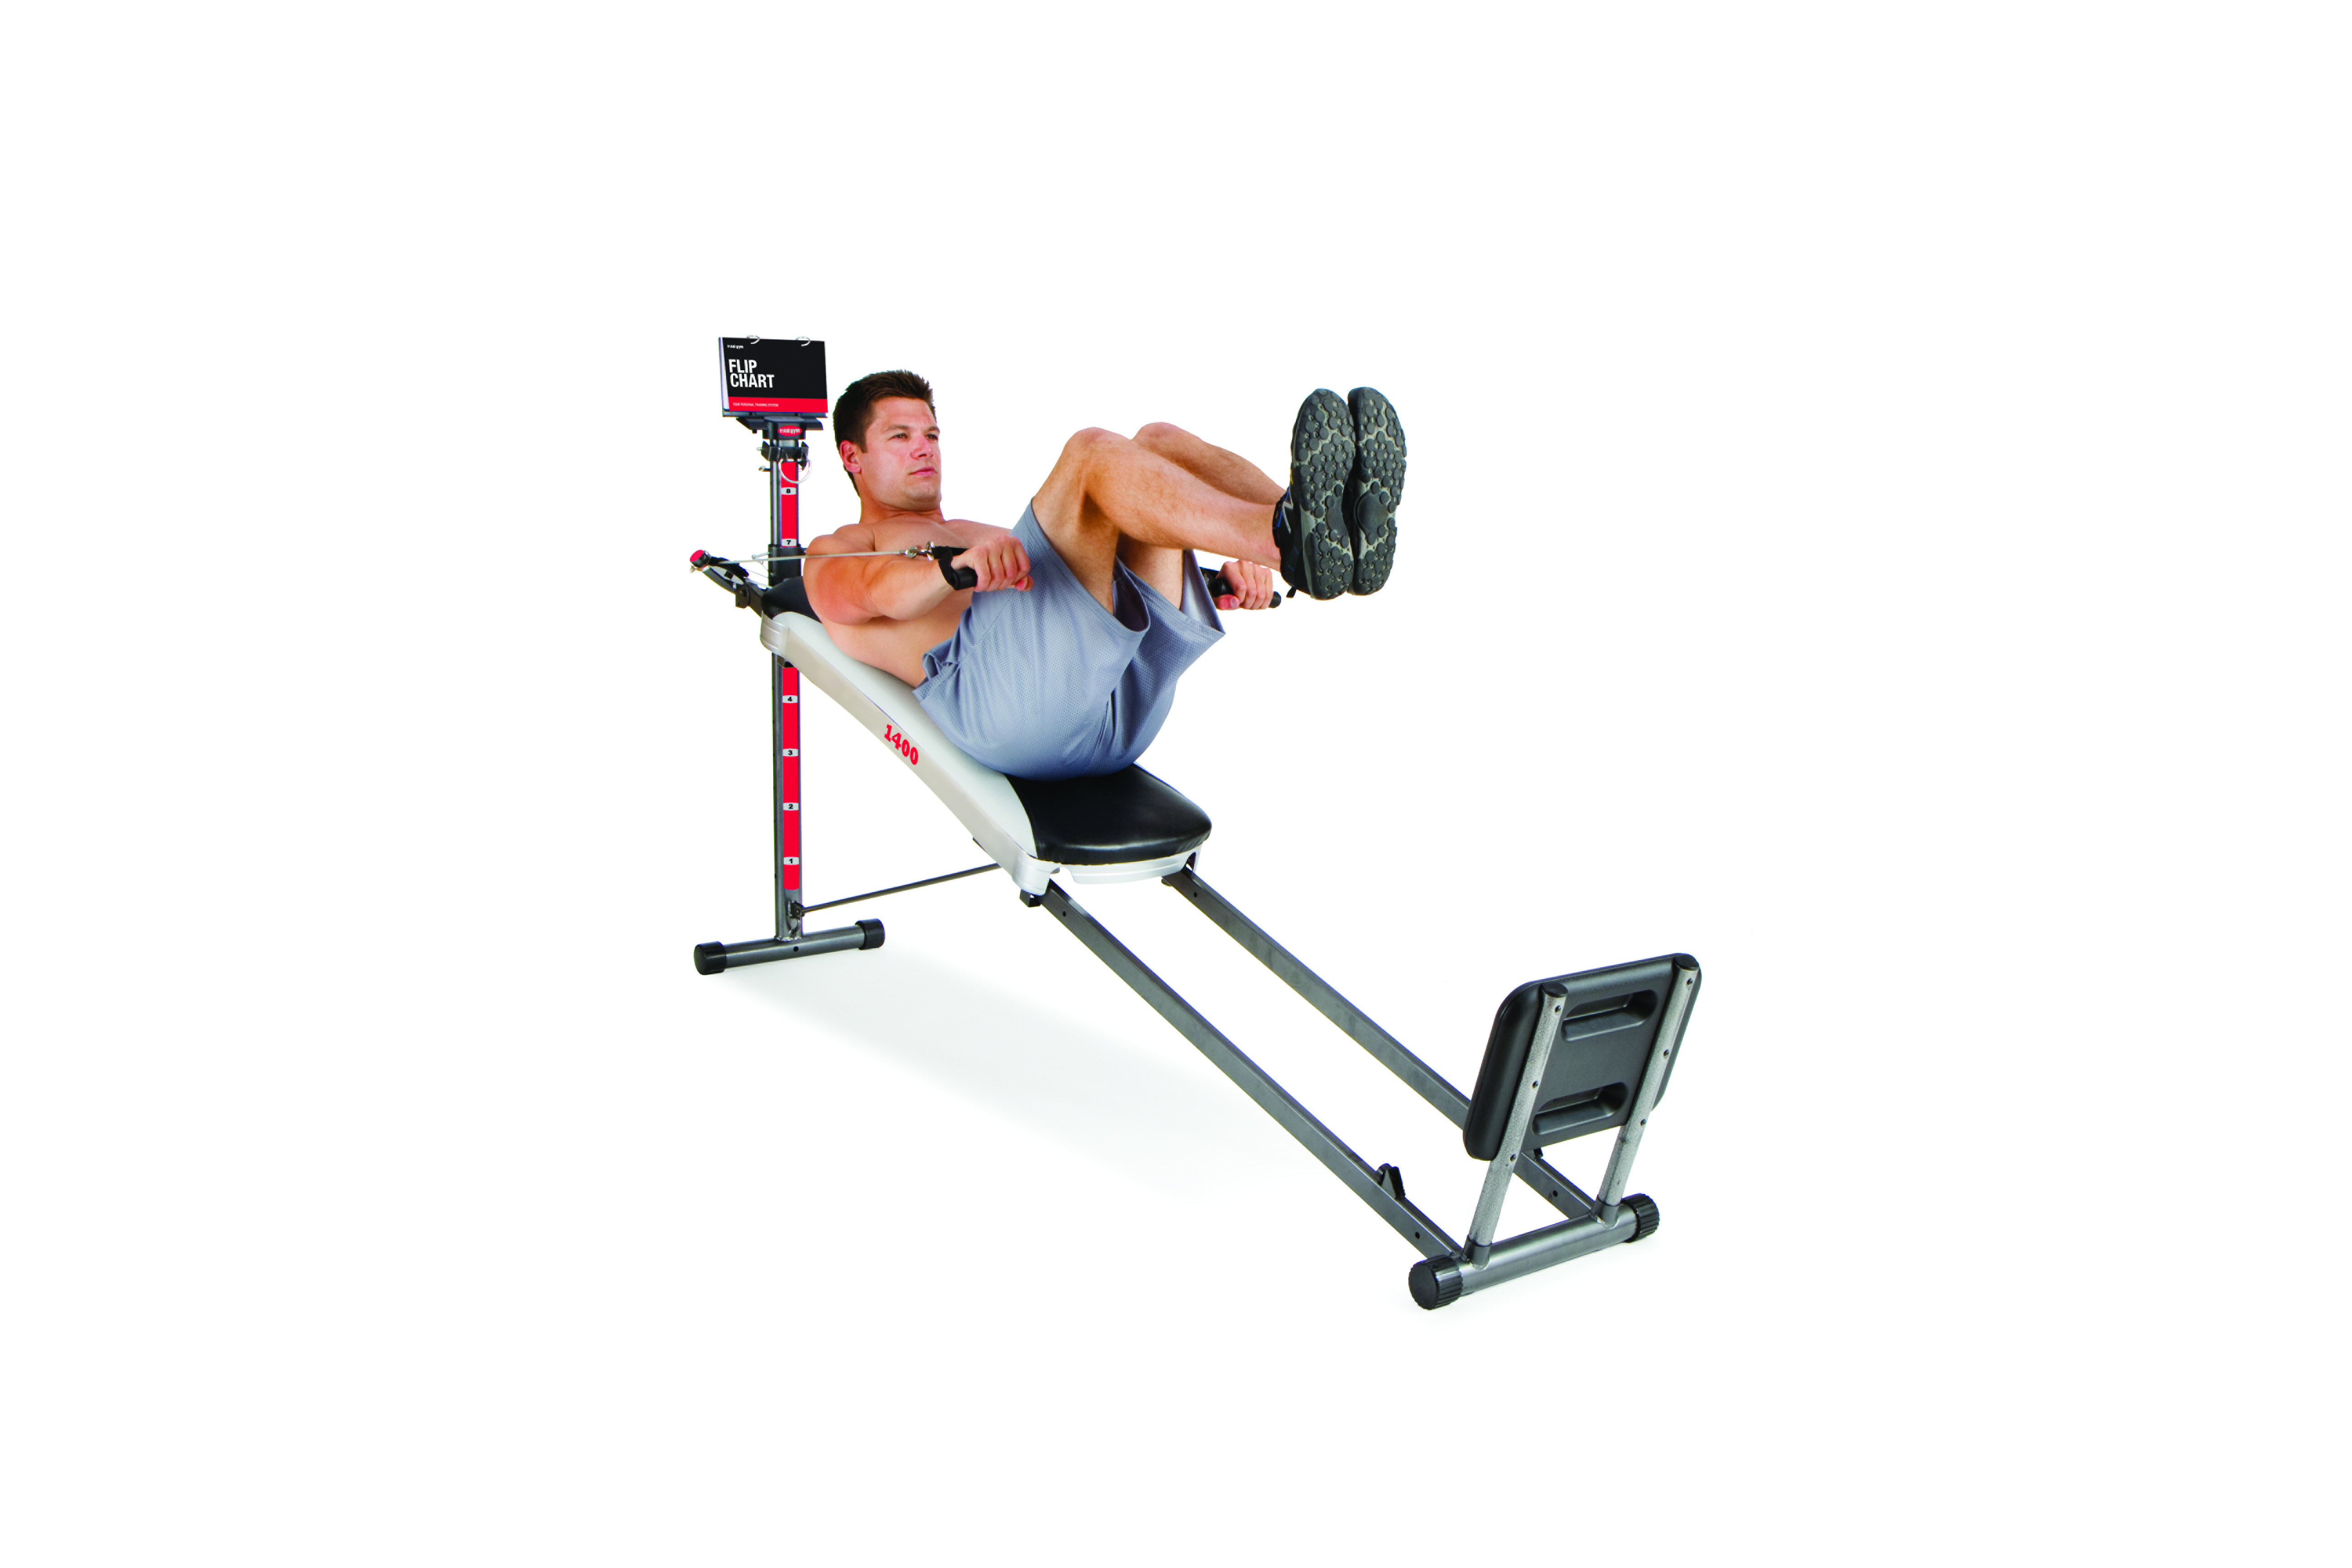 Total Gym 1400 Total Home Gym with Workout DVD - Full Body